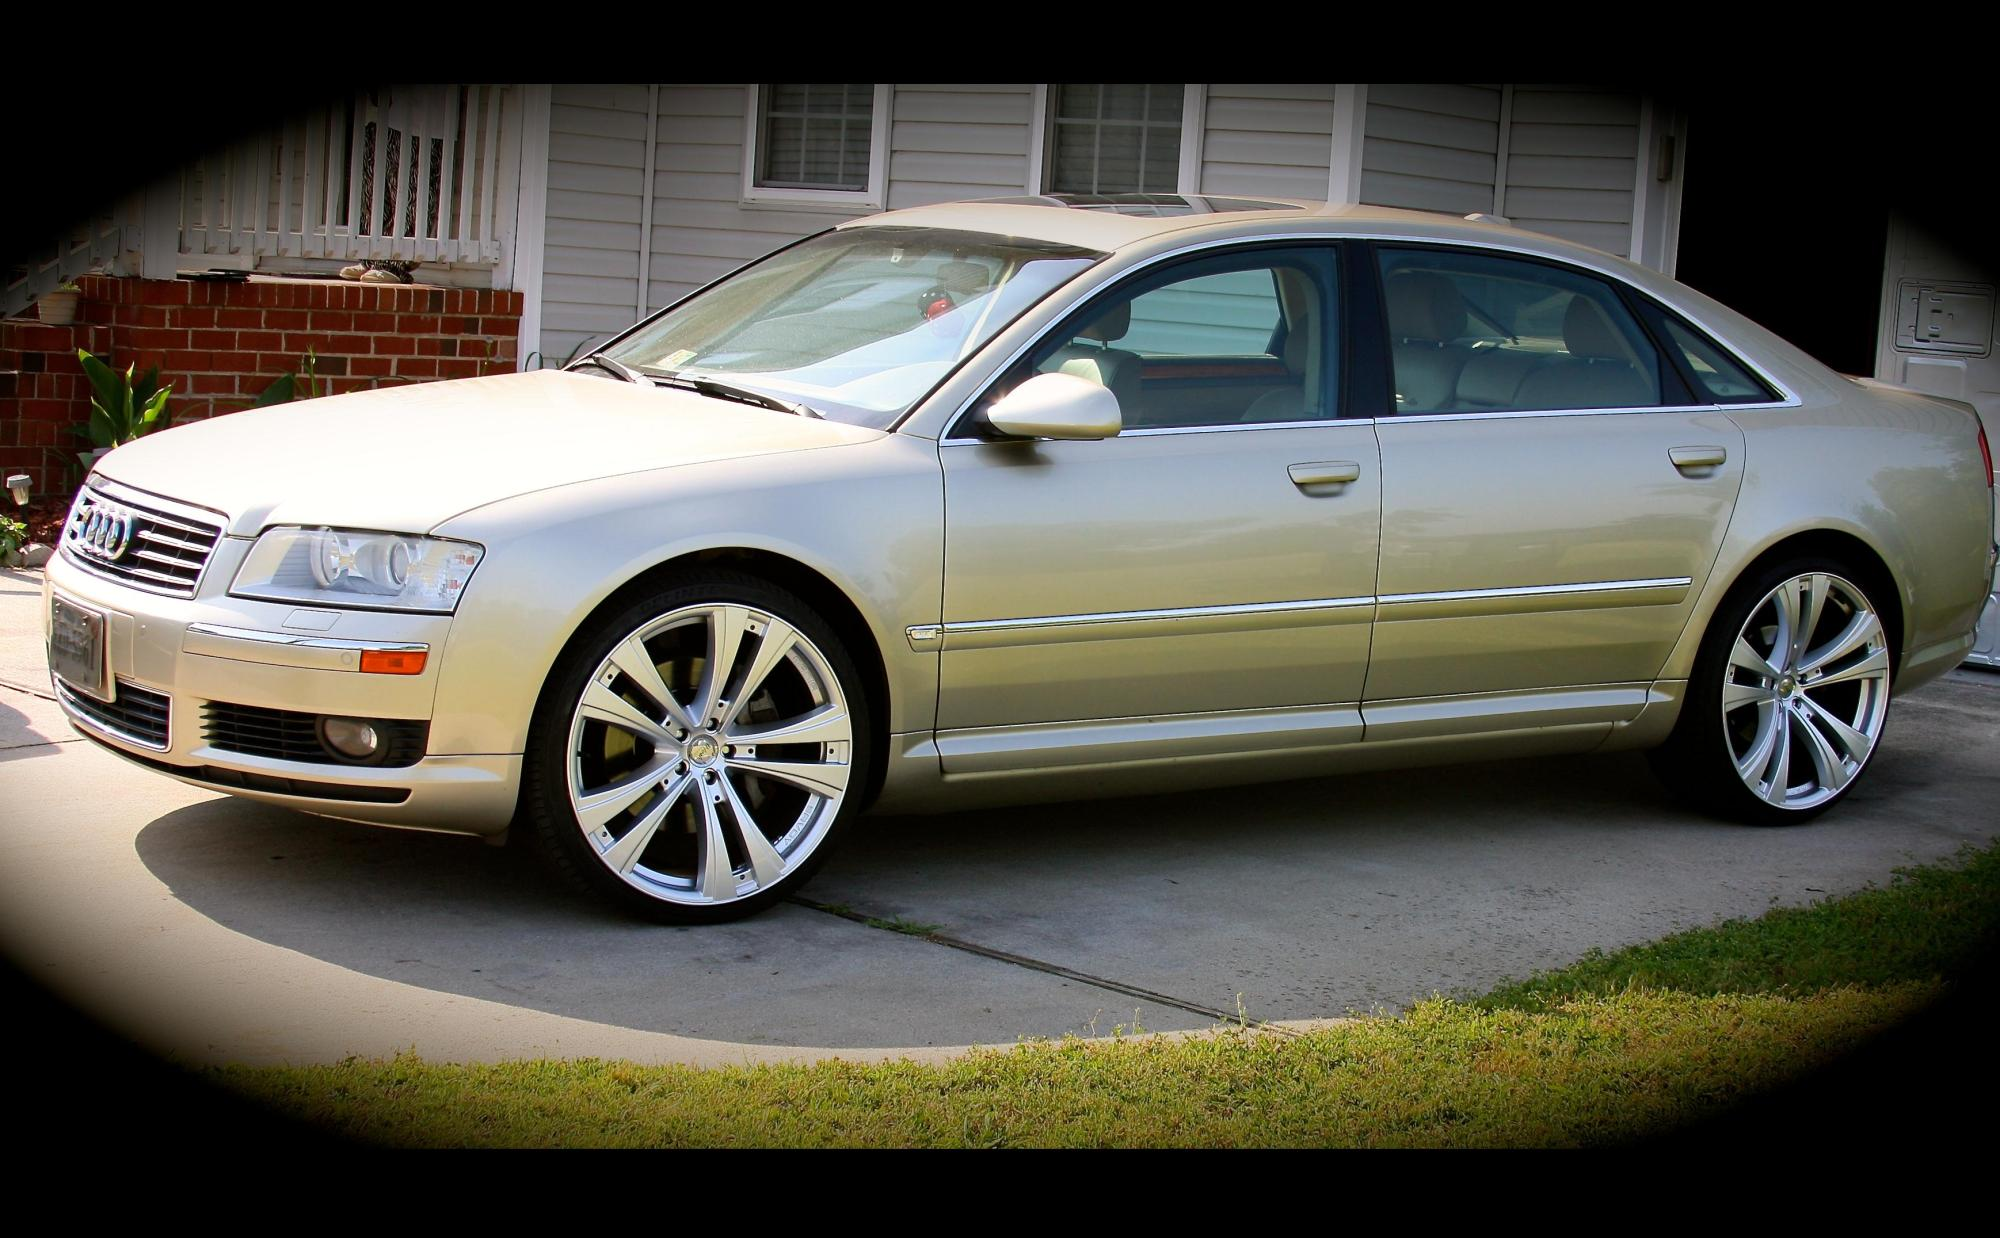 hight resolution of timtaylor1113 2004 audi a8